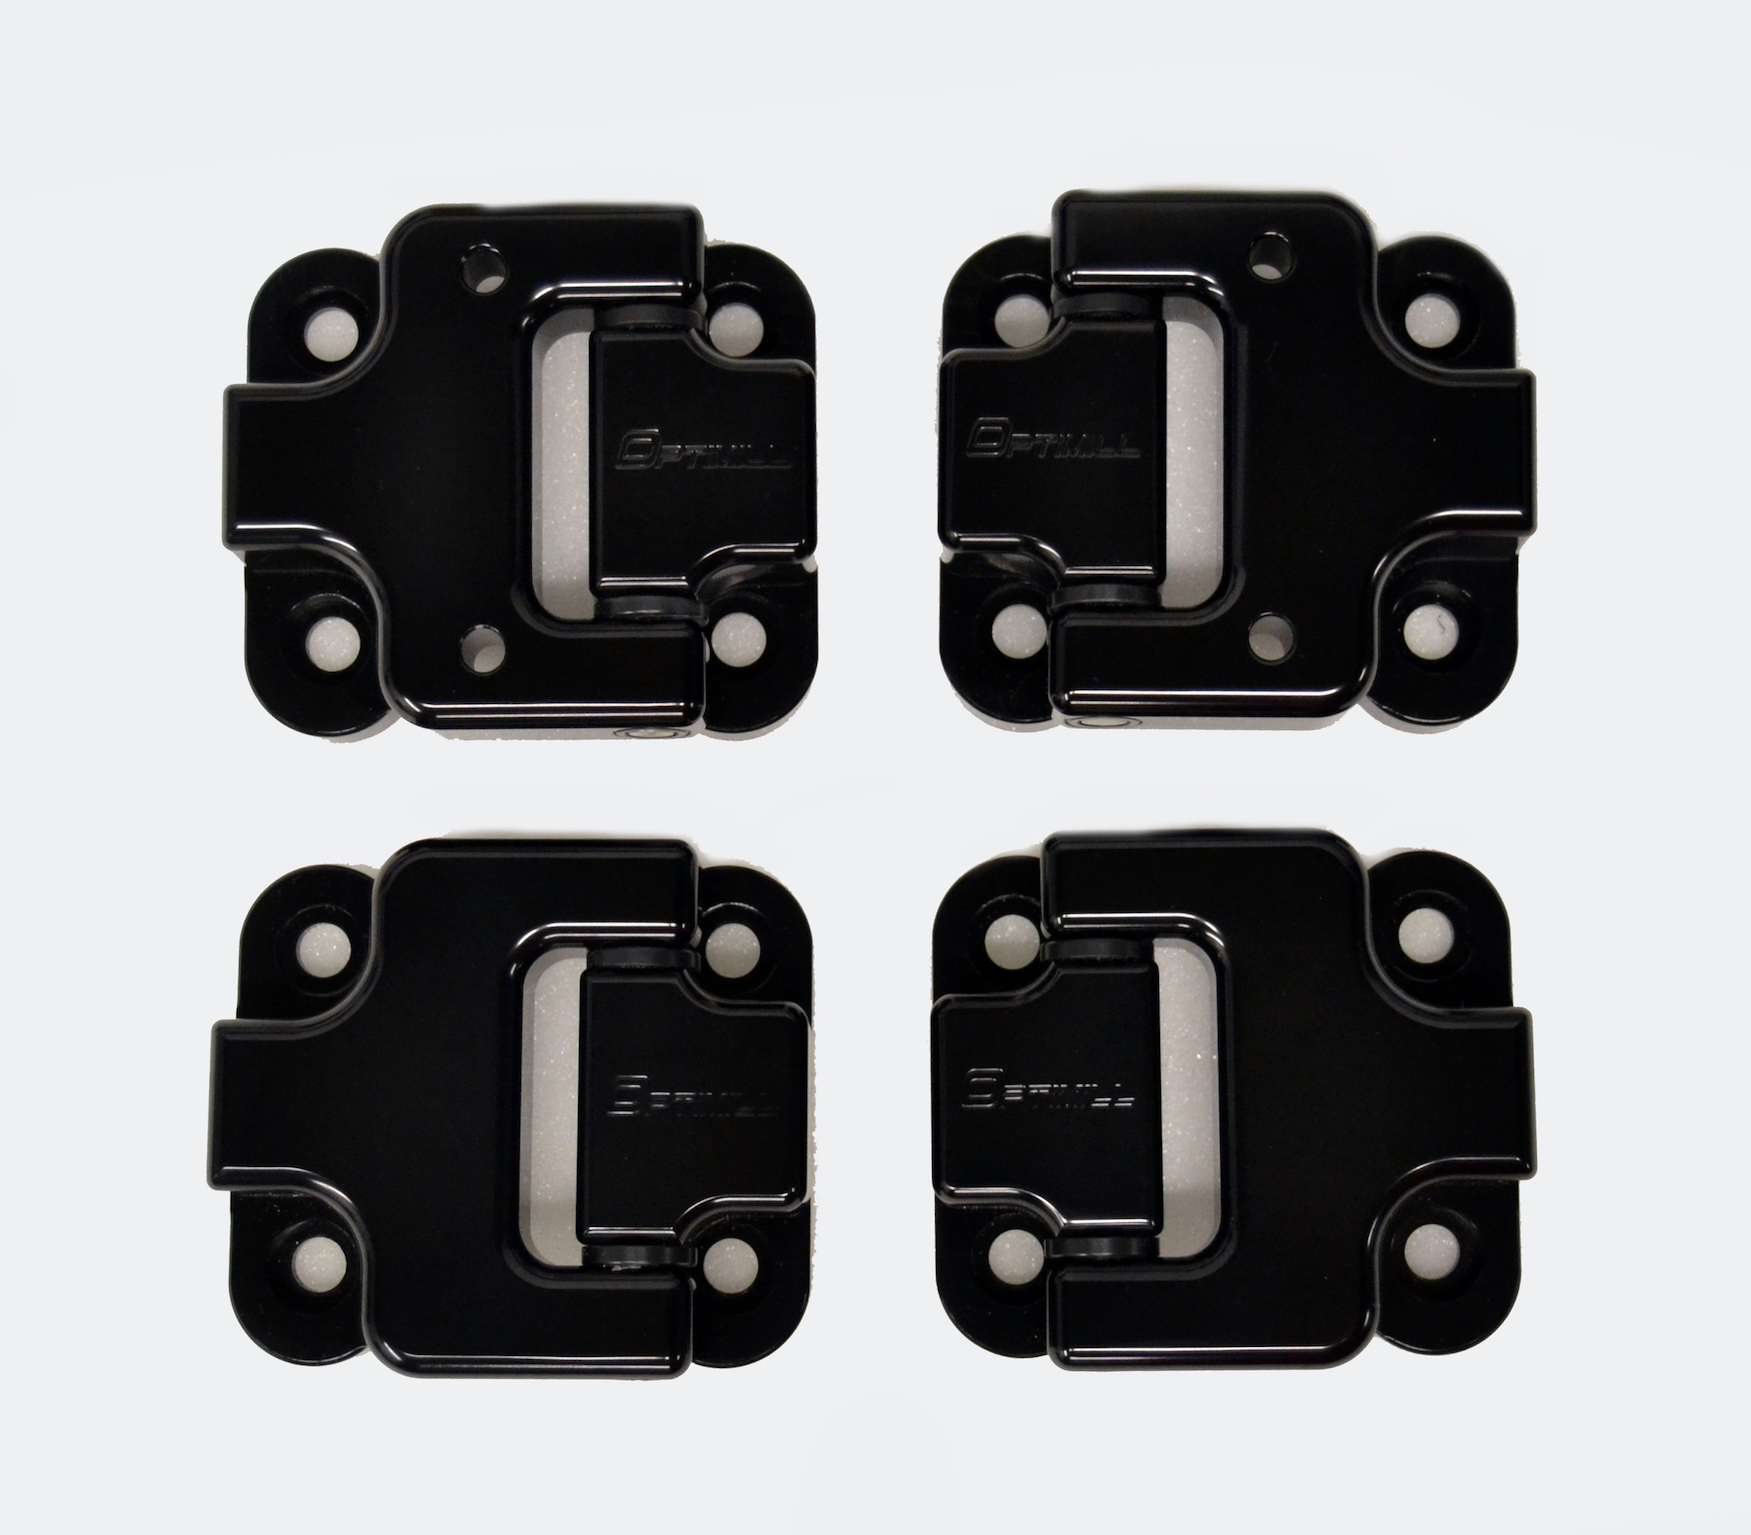 Landrover Defender Front Door Hinges 90 set of 4 in Black